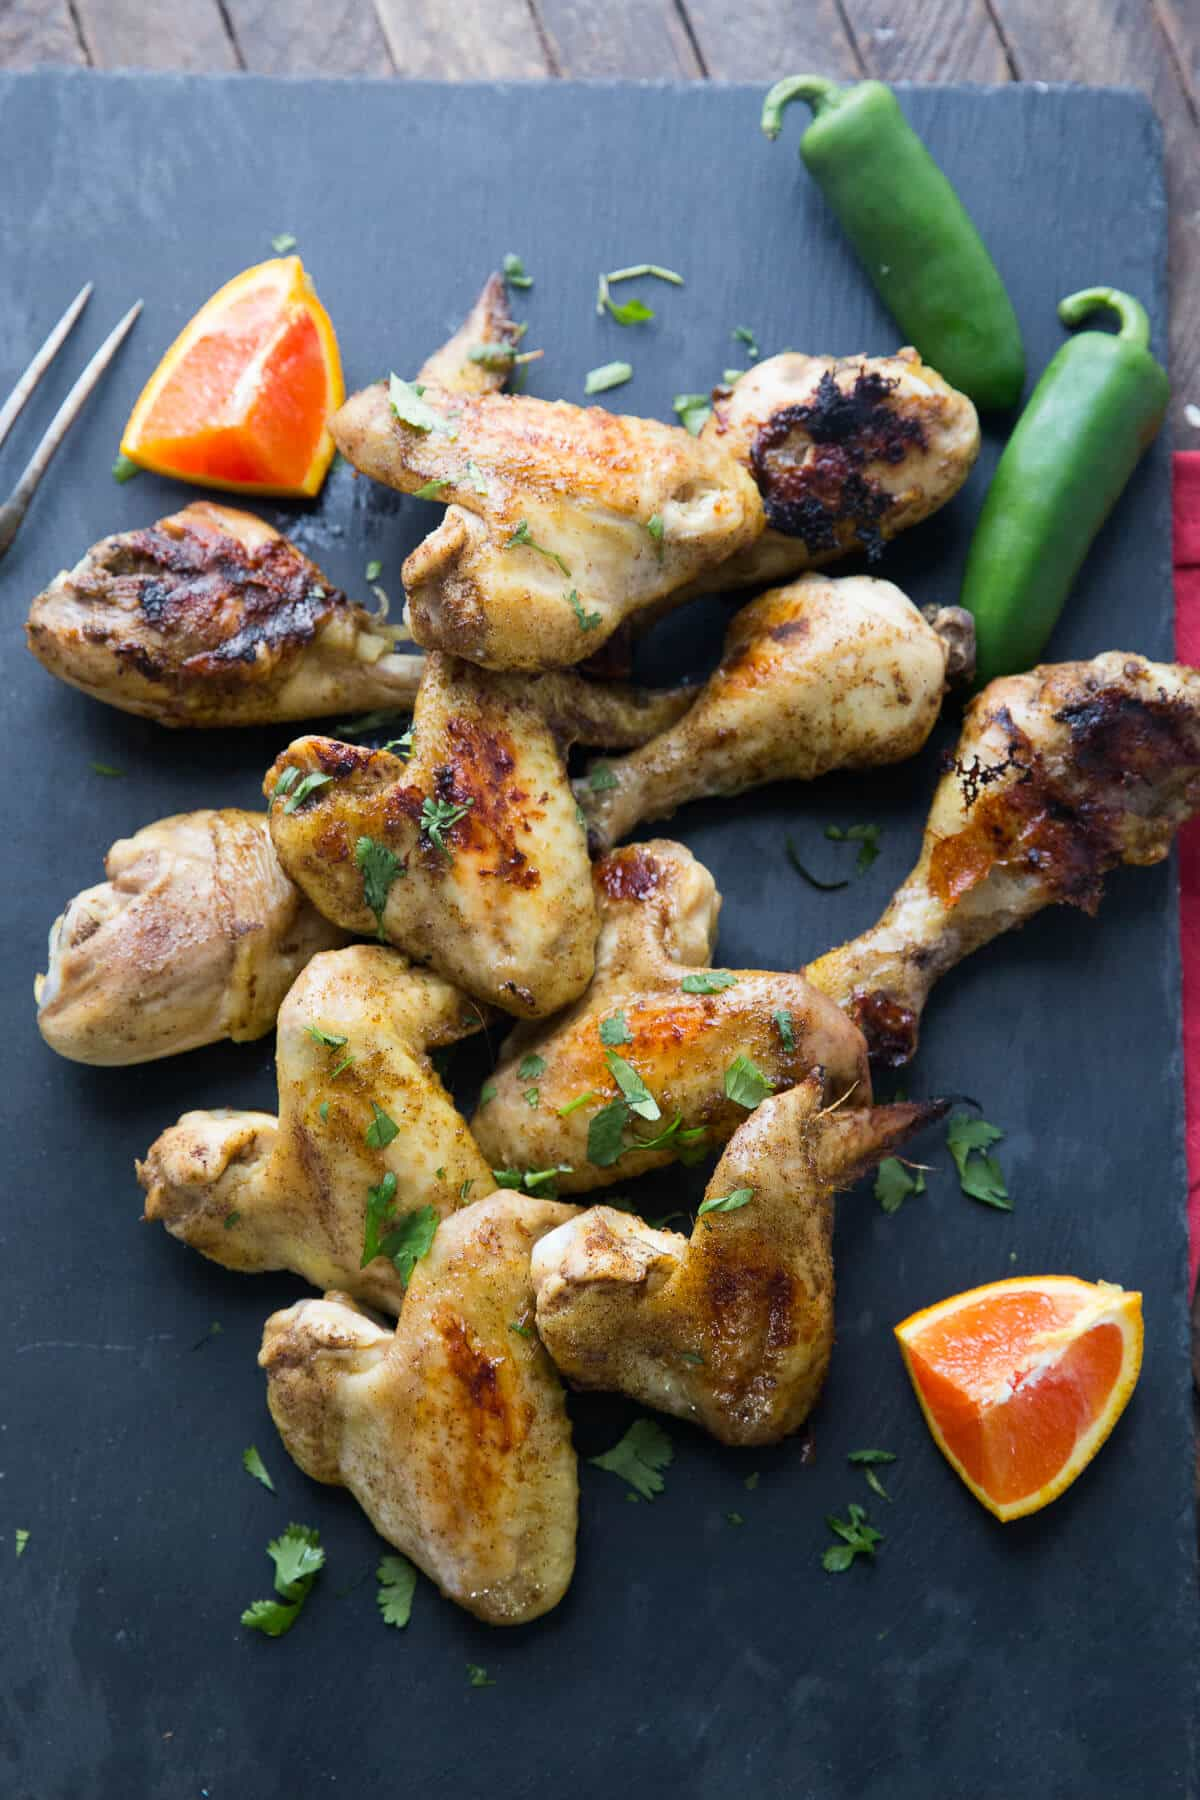 Jamaican jerk chicken is an island essential! This is an easy way to enjoy jerk chicken at home!